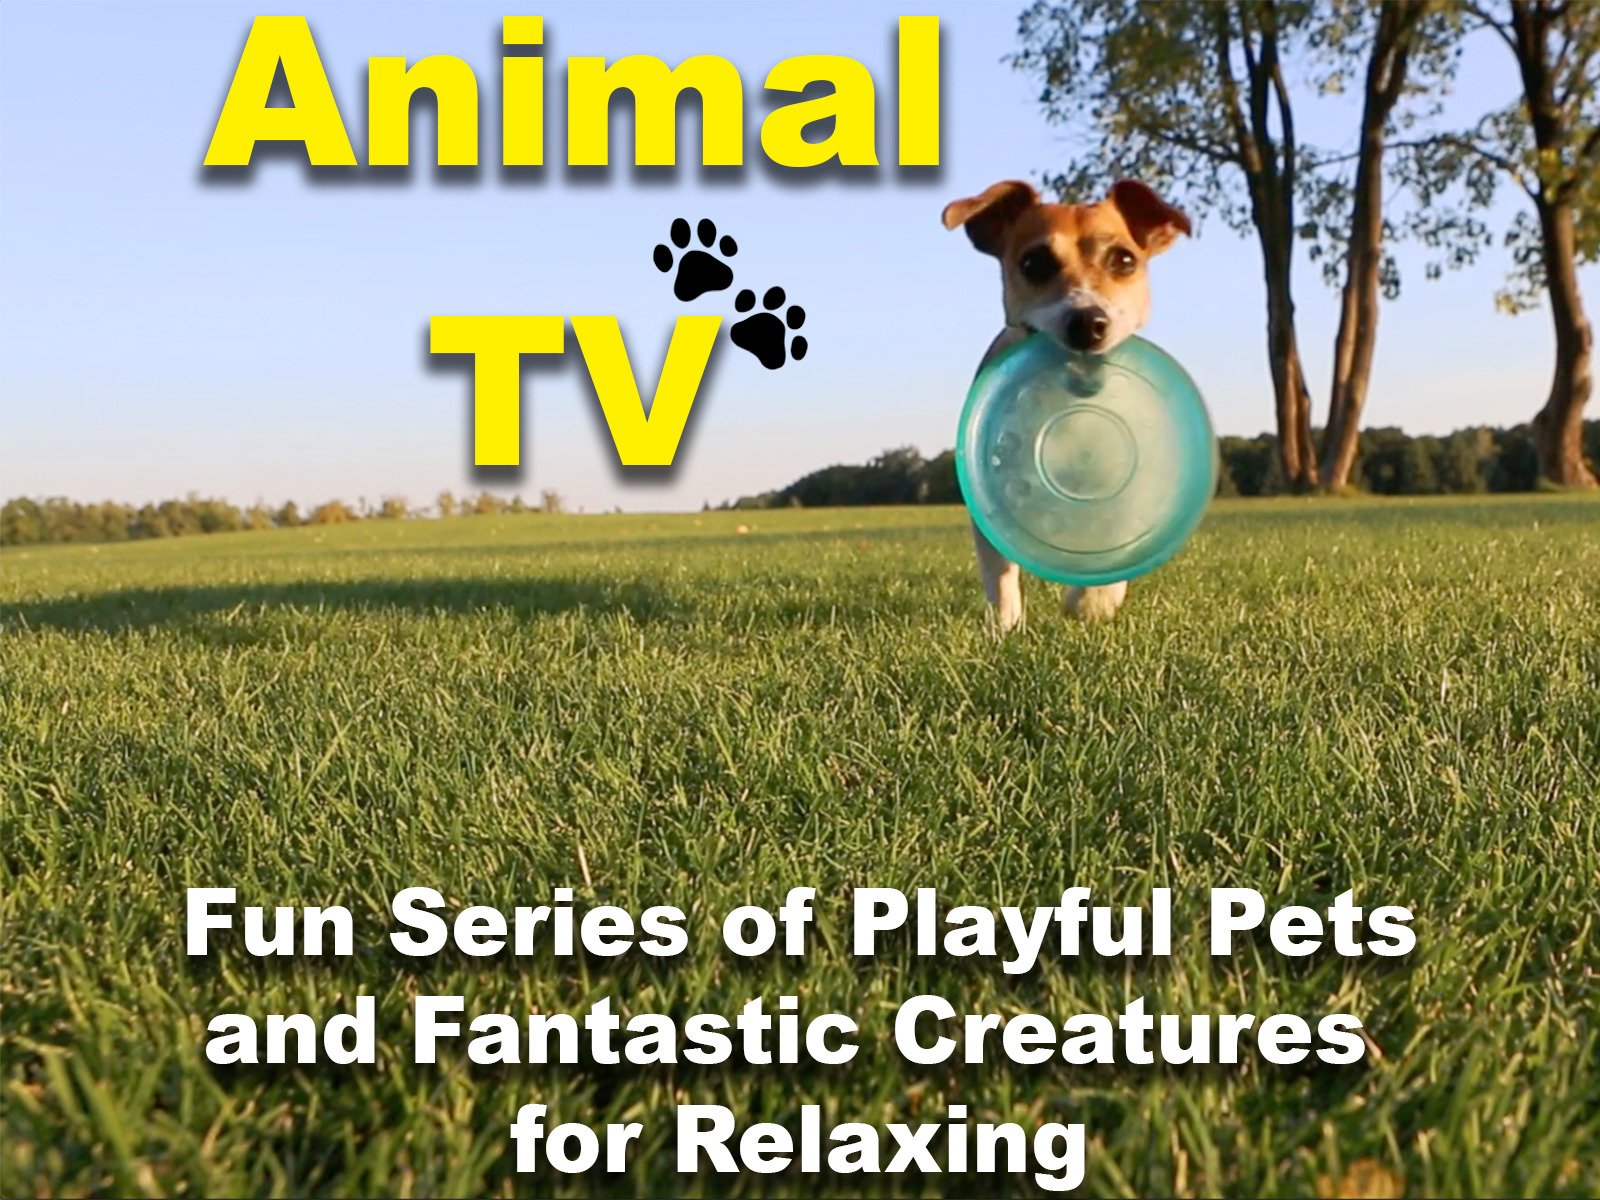 Animal TV Fun Series of Playful Pets and Fantastic Creatures for Relaxing - Season 1